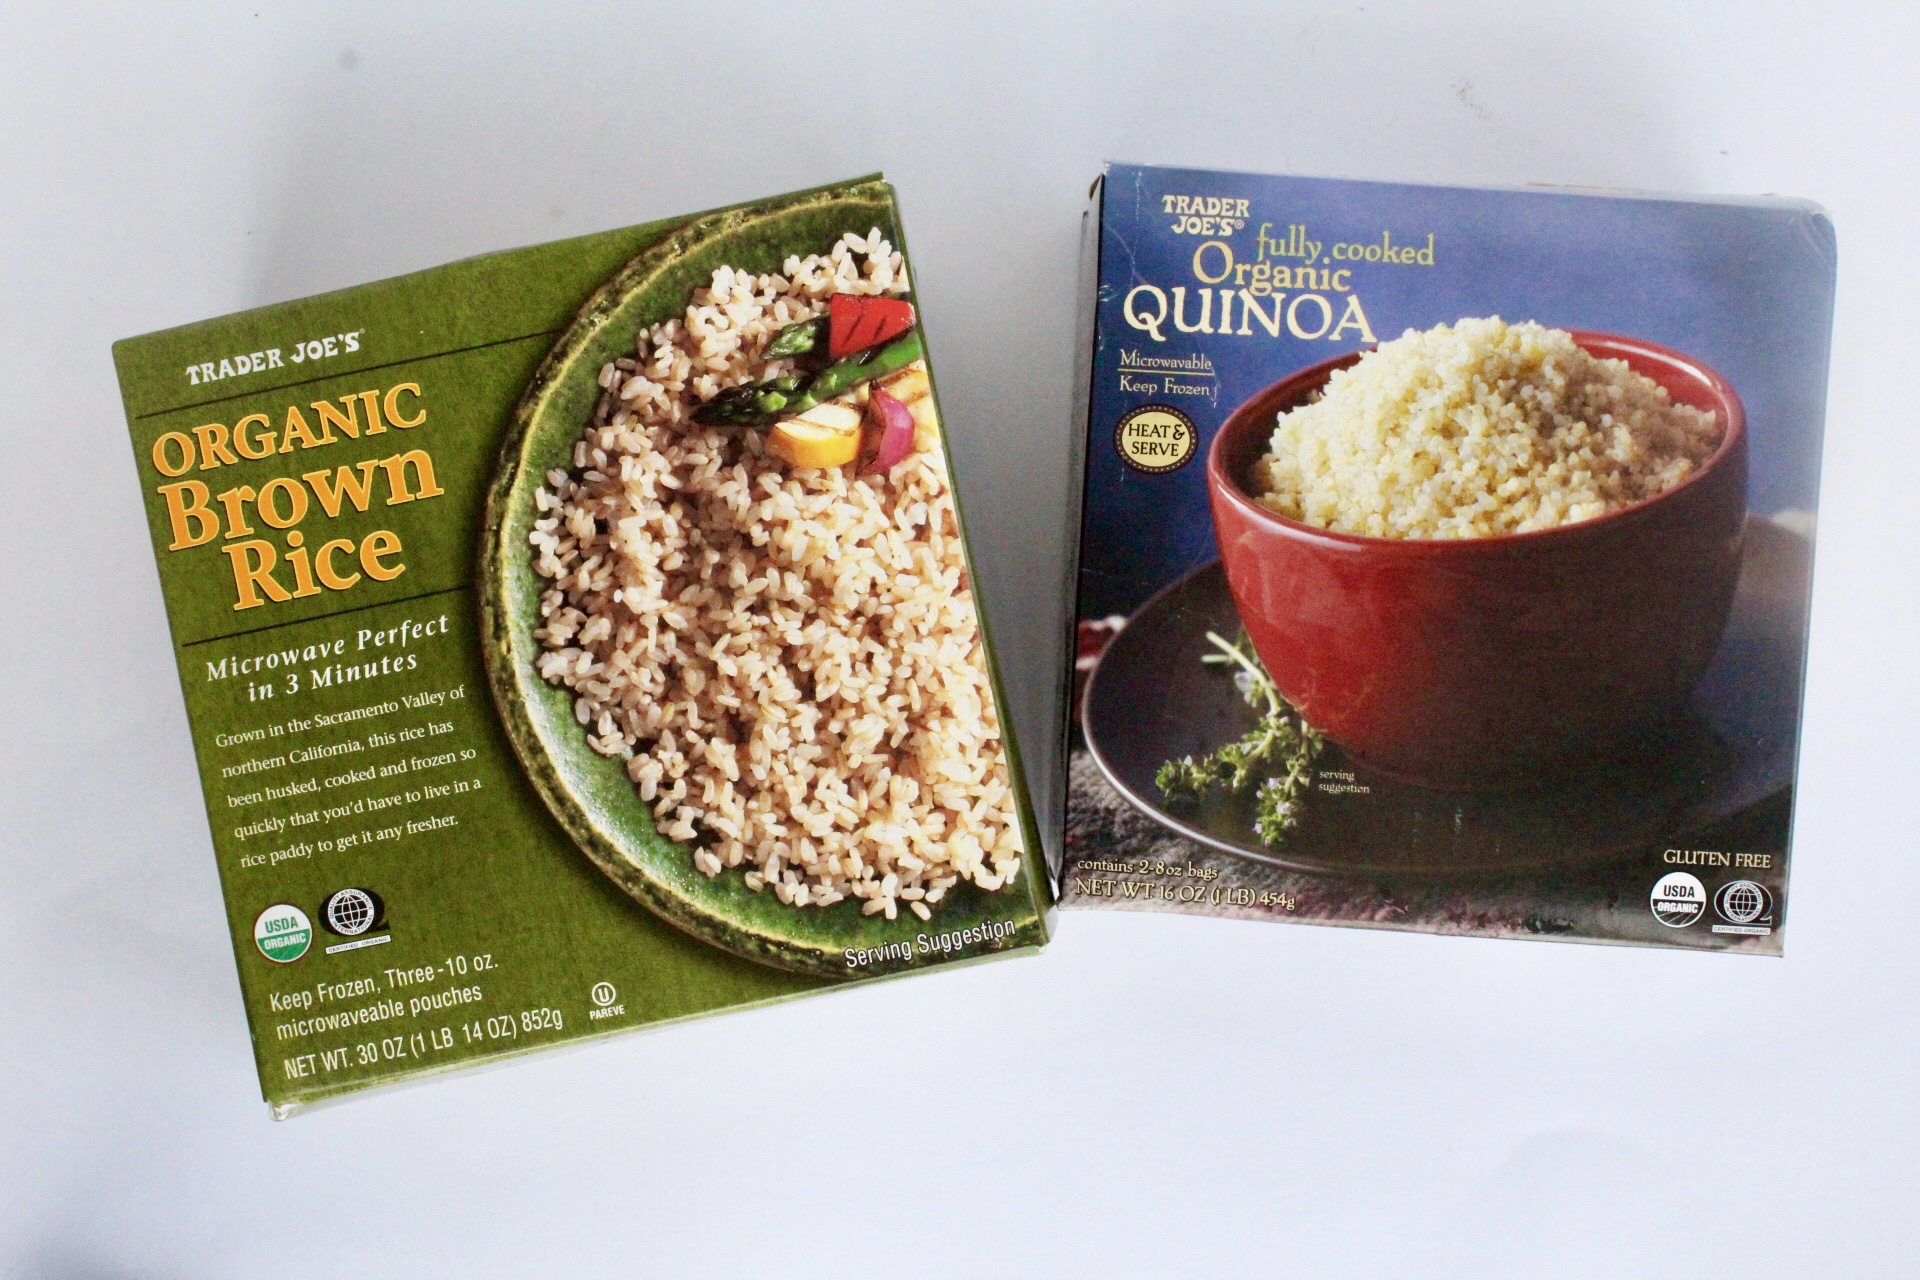 9. Frozen Brown Rice & Quinoa - Love the pre-cooked, frozen boxes of brown rice and quinoa that each come with three individual packets. You can heat these up so quickly either on the stove or in the microwave. Some of my favorite ways to use the brown rice are either for burrito bowls or stir-fries, and I love using the quinoa to make quinoa+black bean burgers!